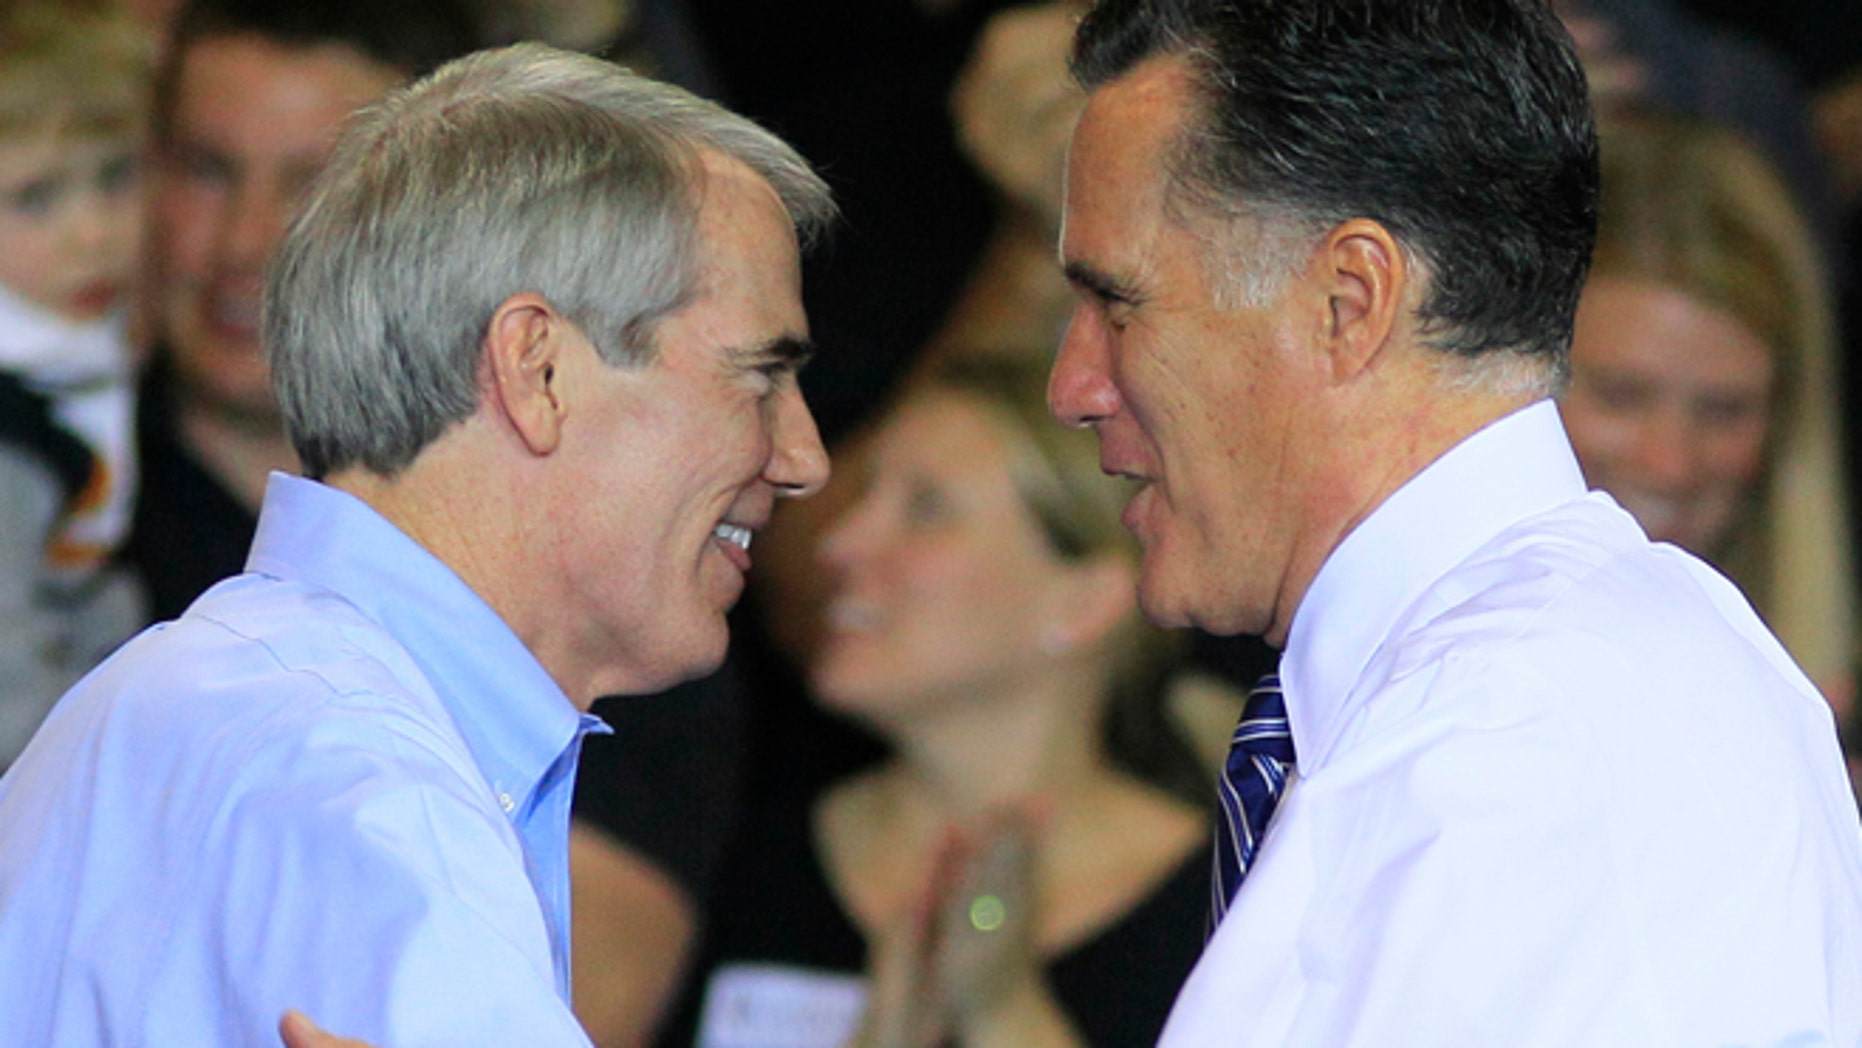 Oct. 25, 2012: In this file photo, Sen. Rob Portman, R-Ohio, left, shakes hands with Republican presidential candidate, former Massachusetts Gov. Mitt Romney after Portman introduced Romney at a campaign stop at defense contractor Jet Machine in Cincinnati.